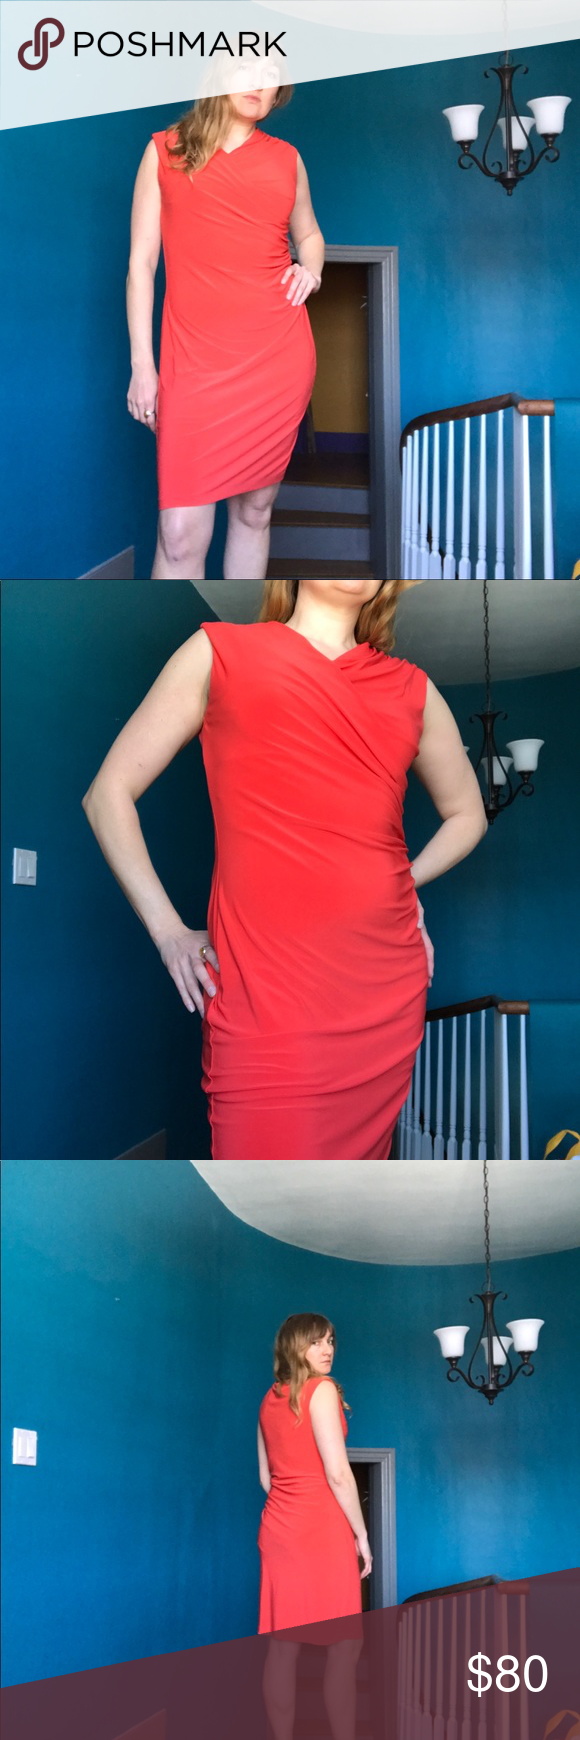 Vince Camuto Red Dress Red Dress Clothes Design Fashion [ 1740 x 580 Pixel ]